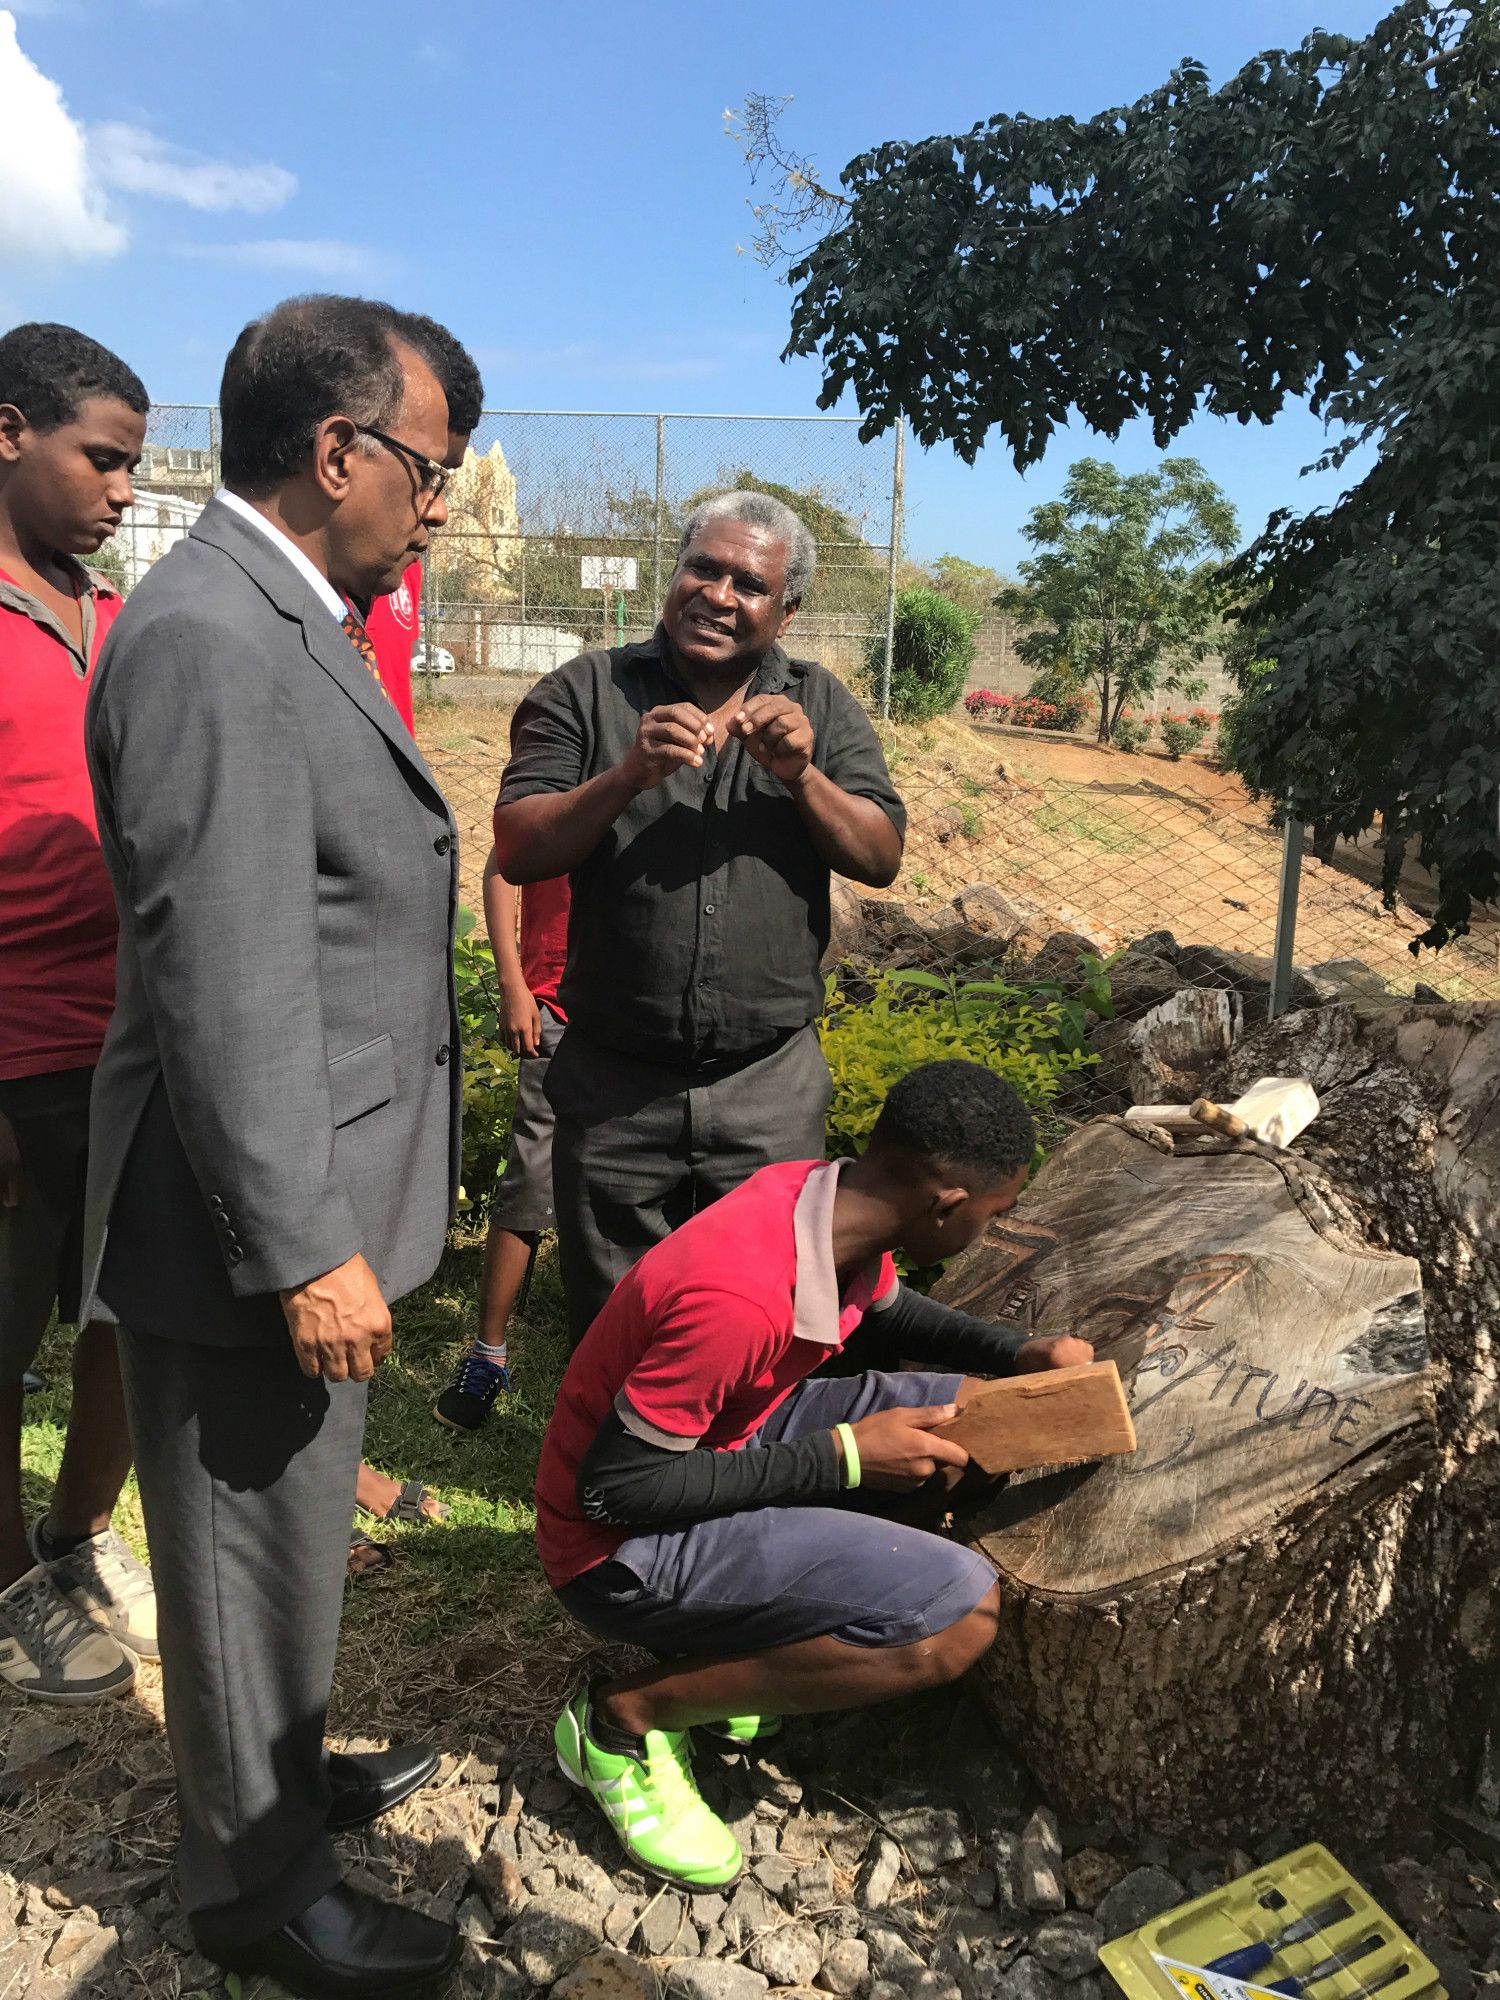 Live engraving of the Zen Artitude Boutik logo on wood by the students to commemorate the event, in the presence of Hon. Soomilduth Sunil Bholah (Minister of Business, Enterprise and Cooperatives)